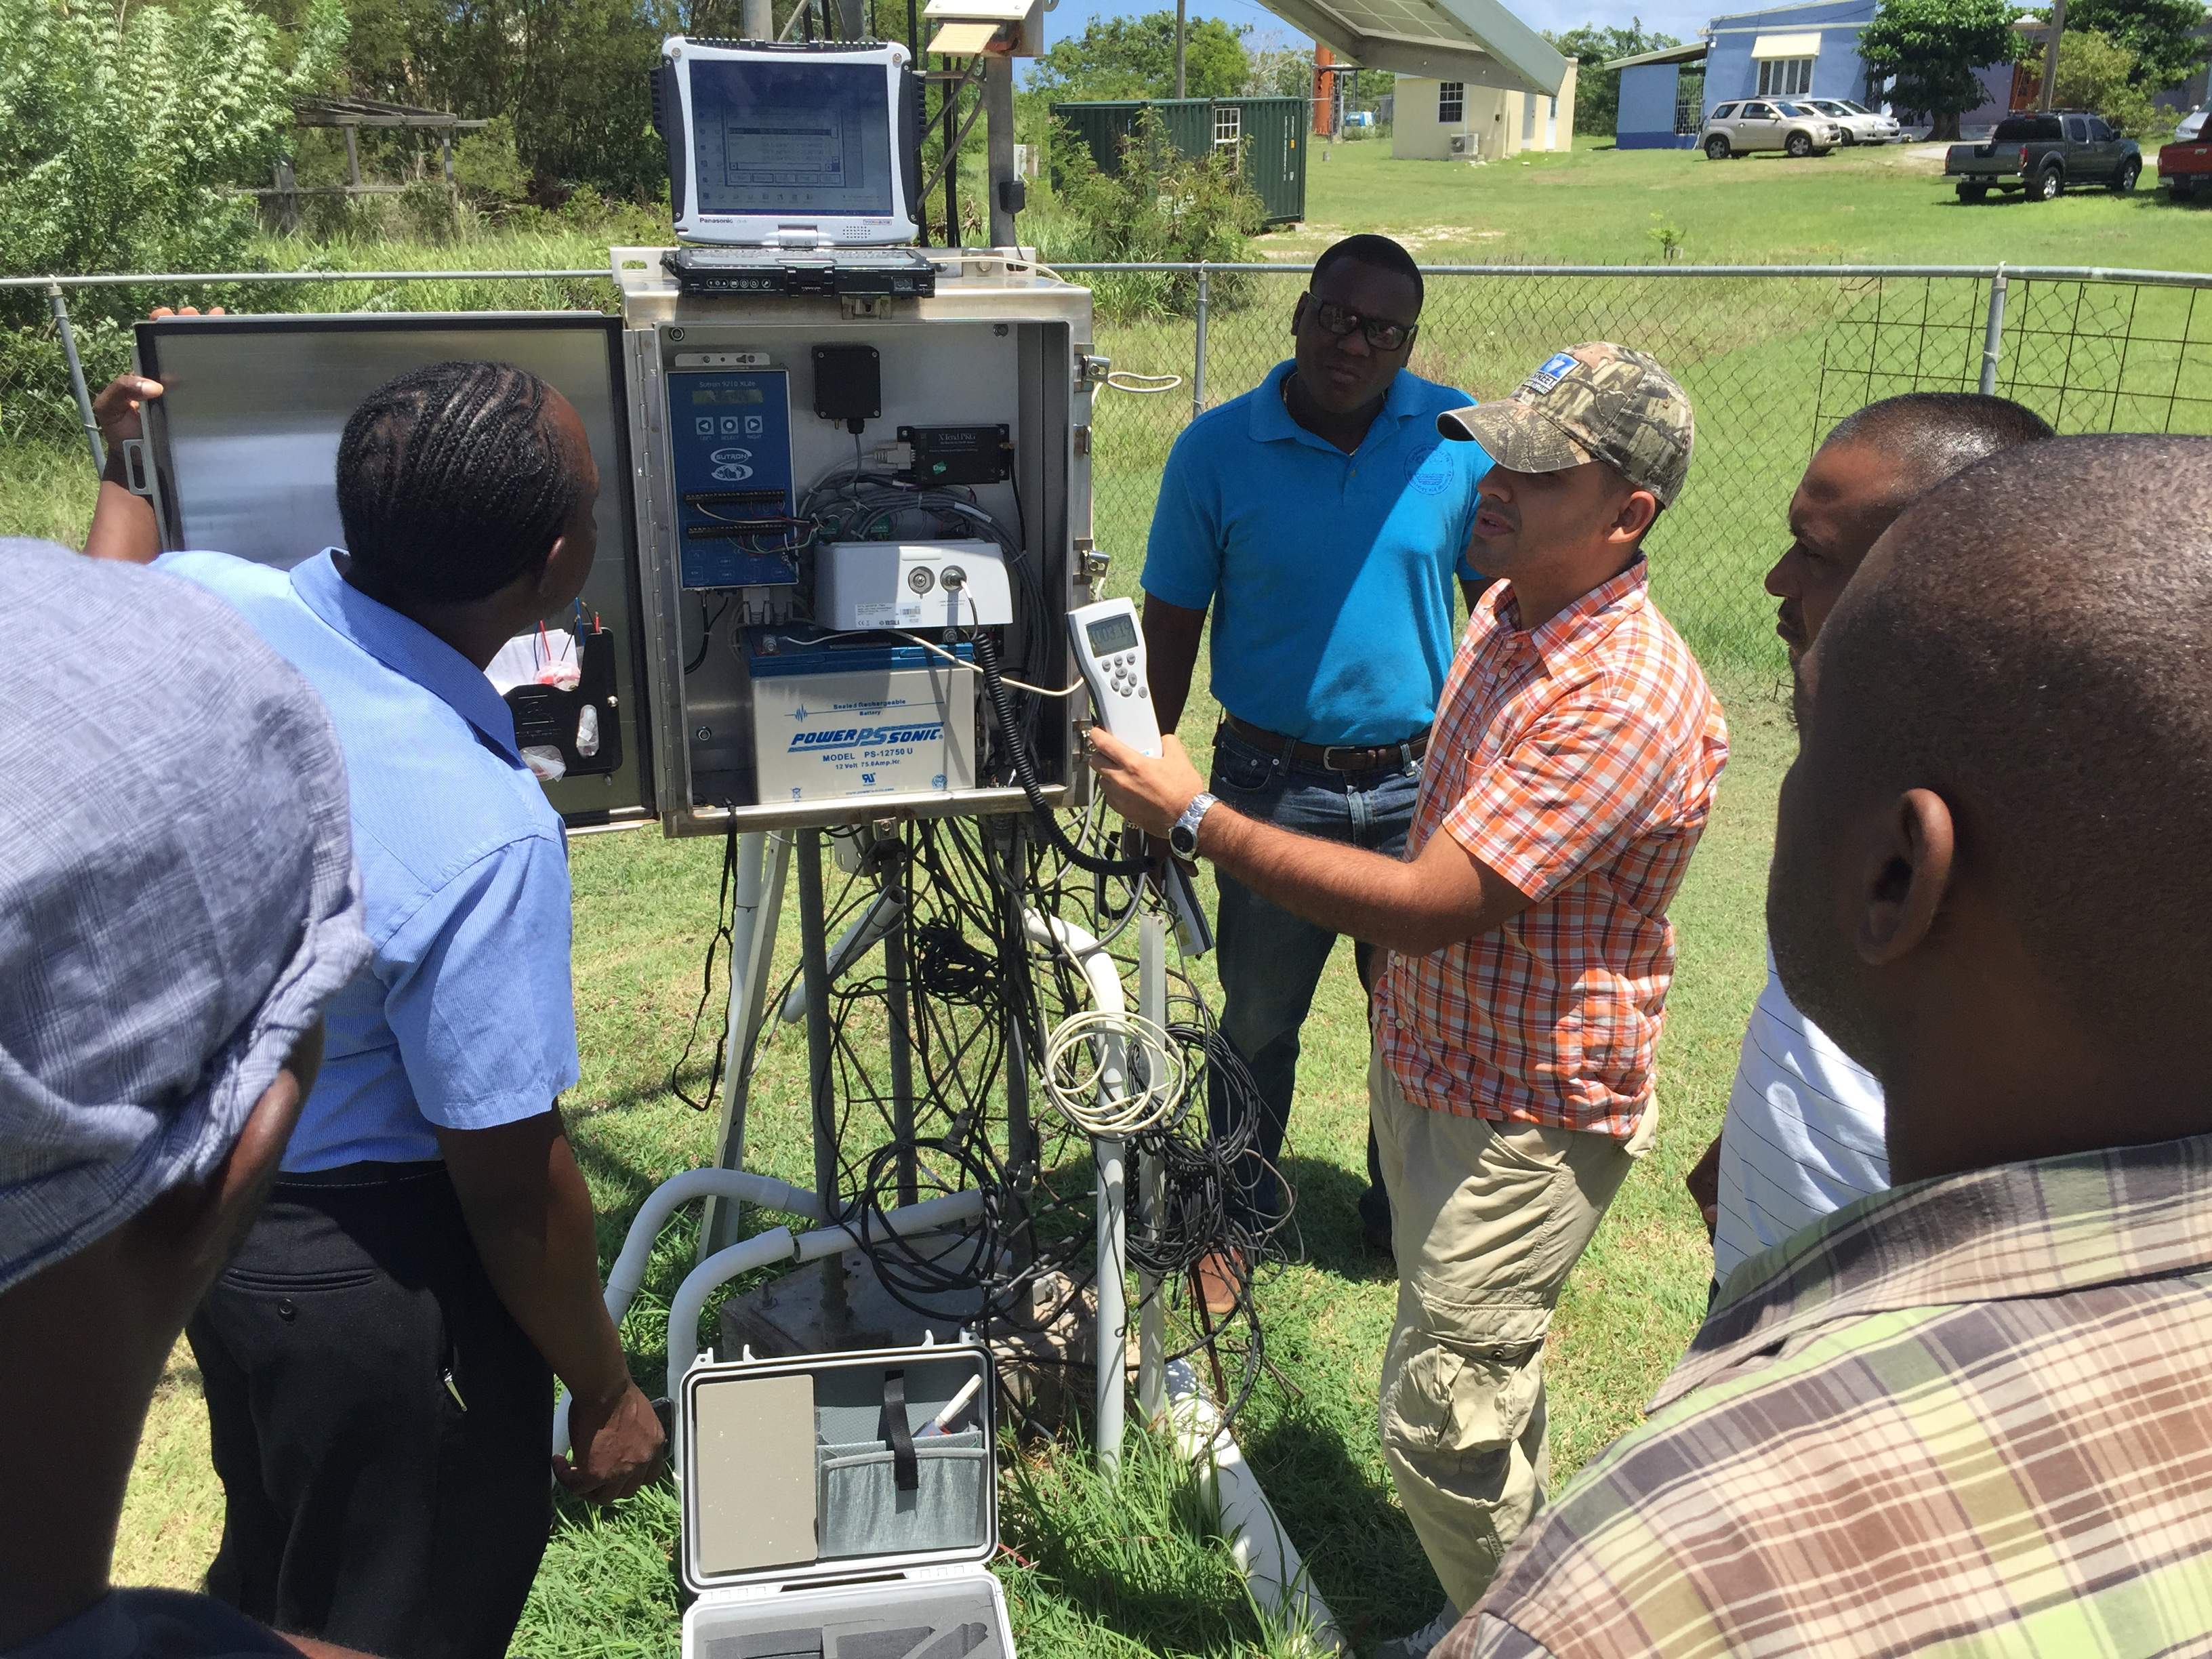 WMO Group Fellowship Training on Instrument Maintenance and Calibration at the Caribbean Institute for Meteorology and Hydrology (CIMH), Bridgetown, Barbados from August to September 2016. Photo by Damien Prescod Msc